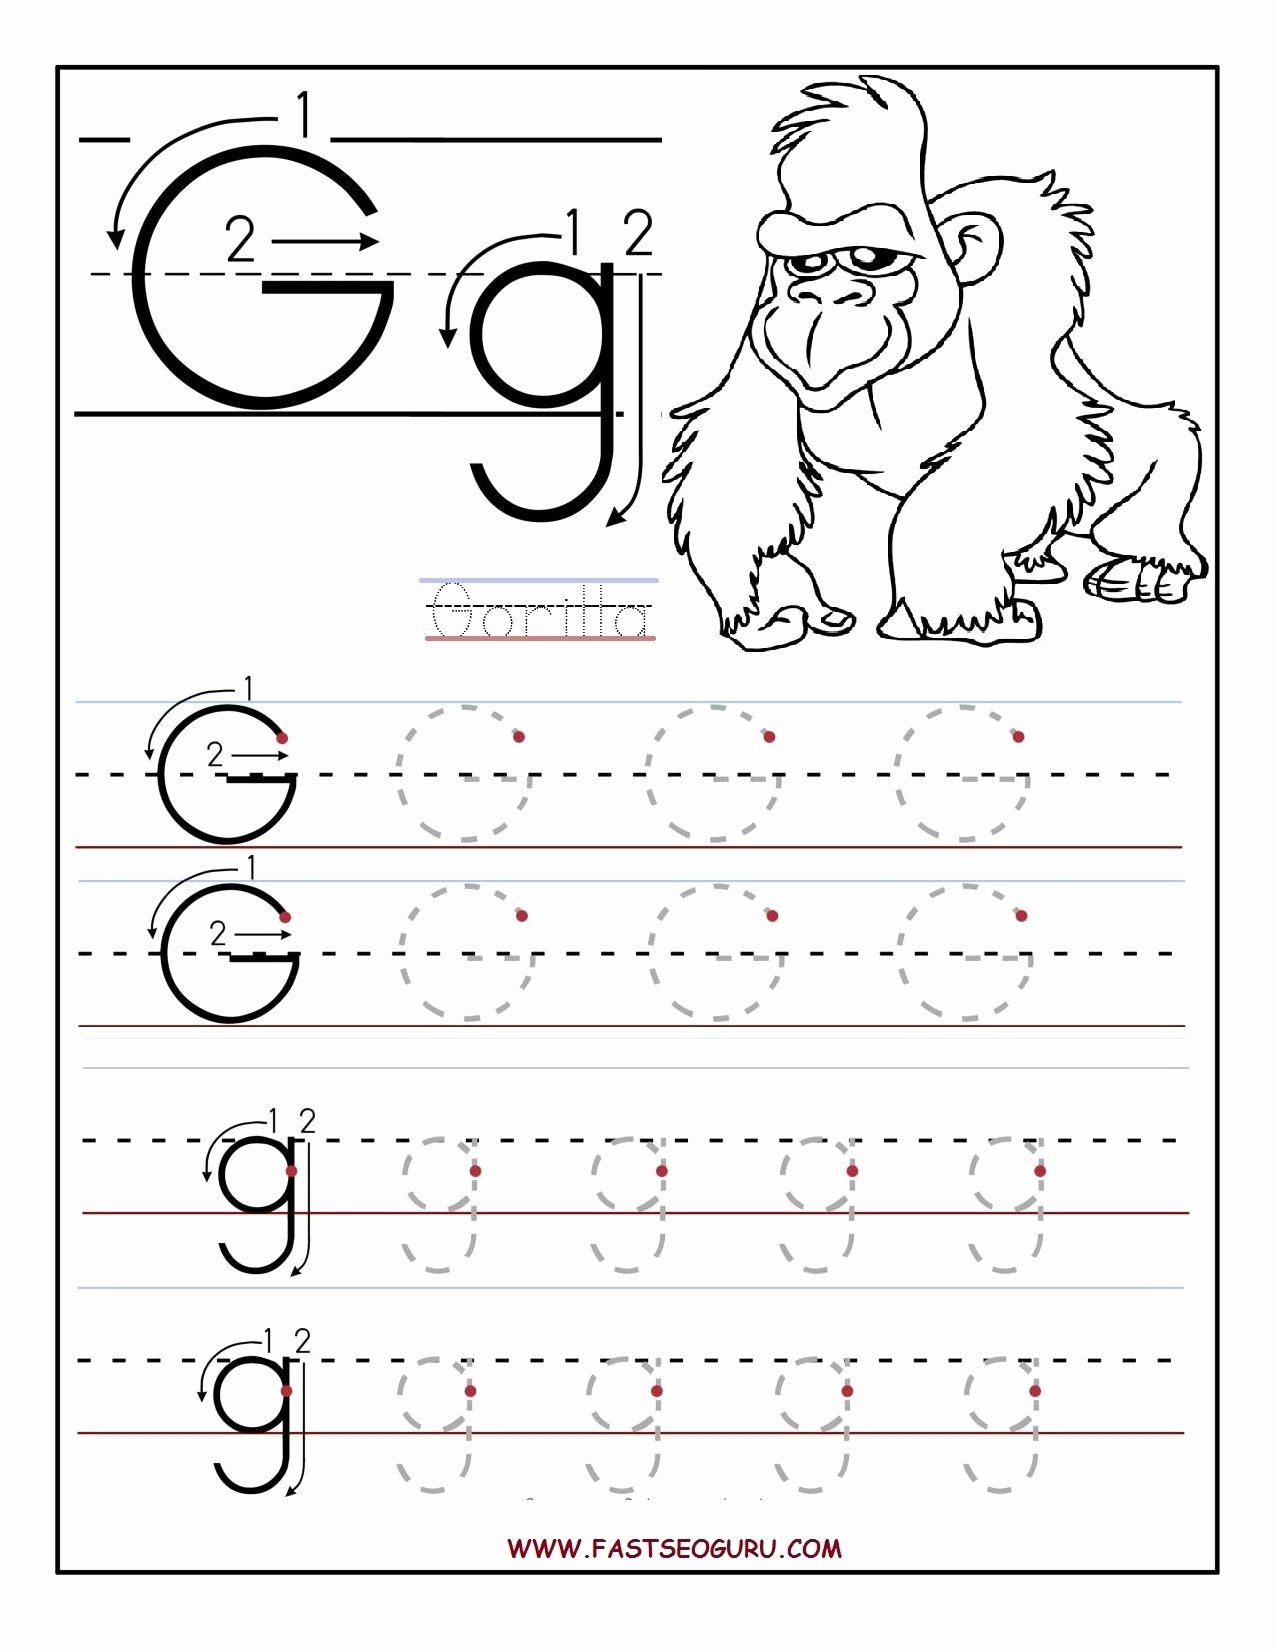 Worksheets for Preschoolers Tracing Letters Best Of Printable Letter G Tracing Worksheets for Preschool